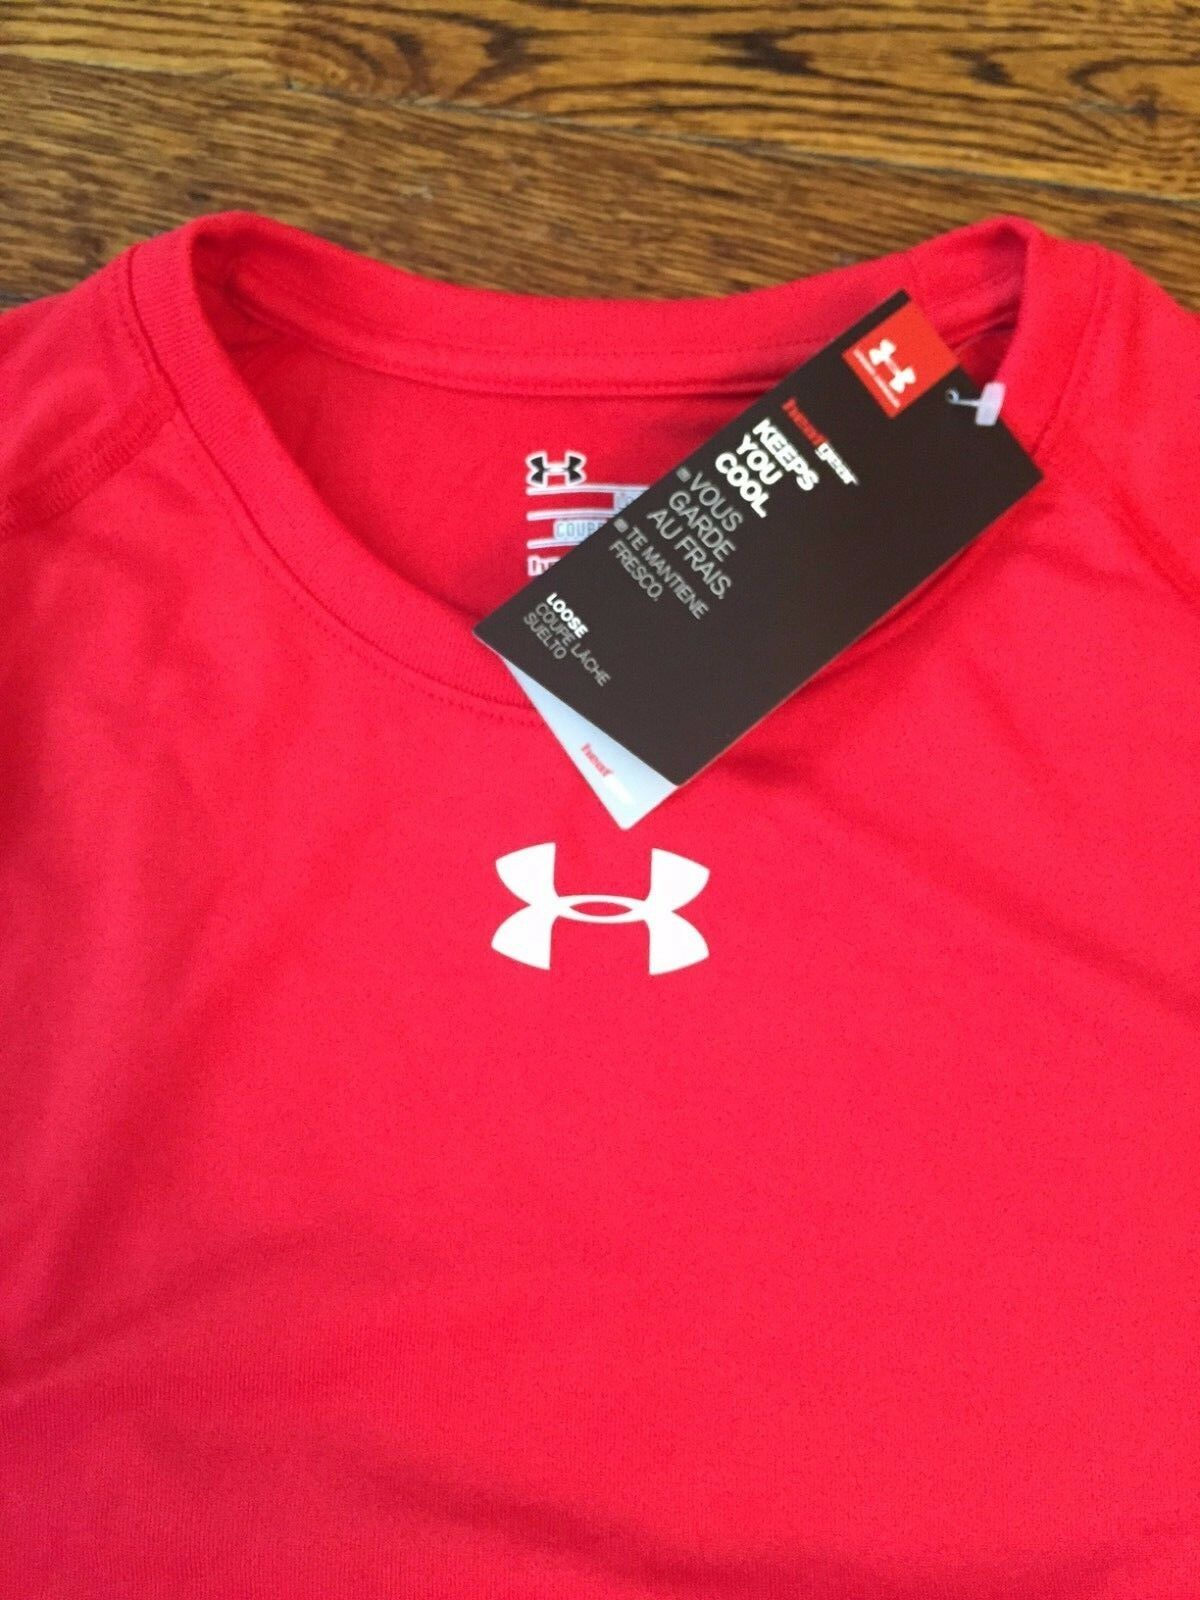 Men's Under Armour Red Short Sleeved T-shirt ALL SIZES Brand New w/Tags